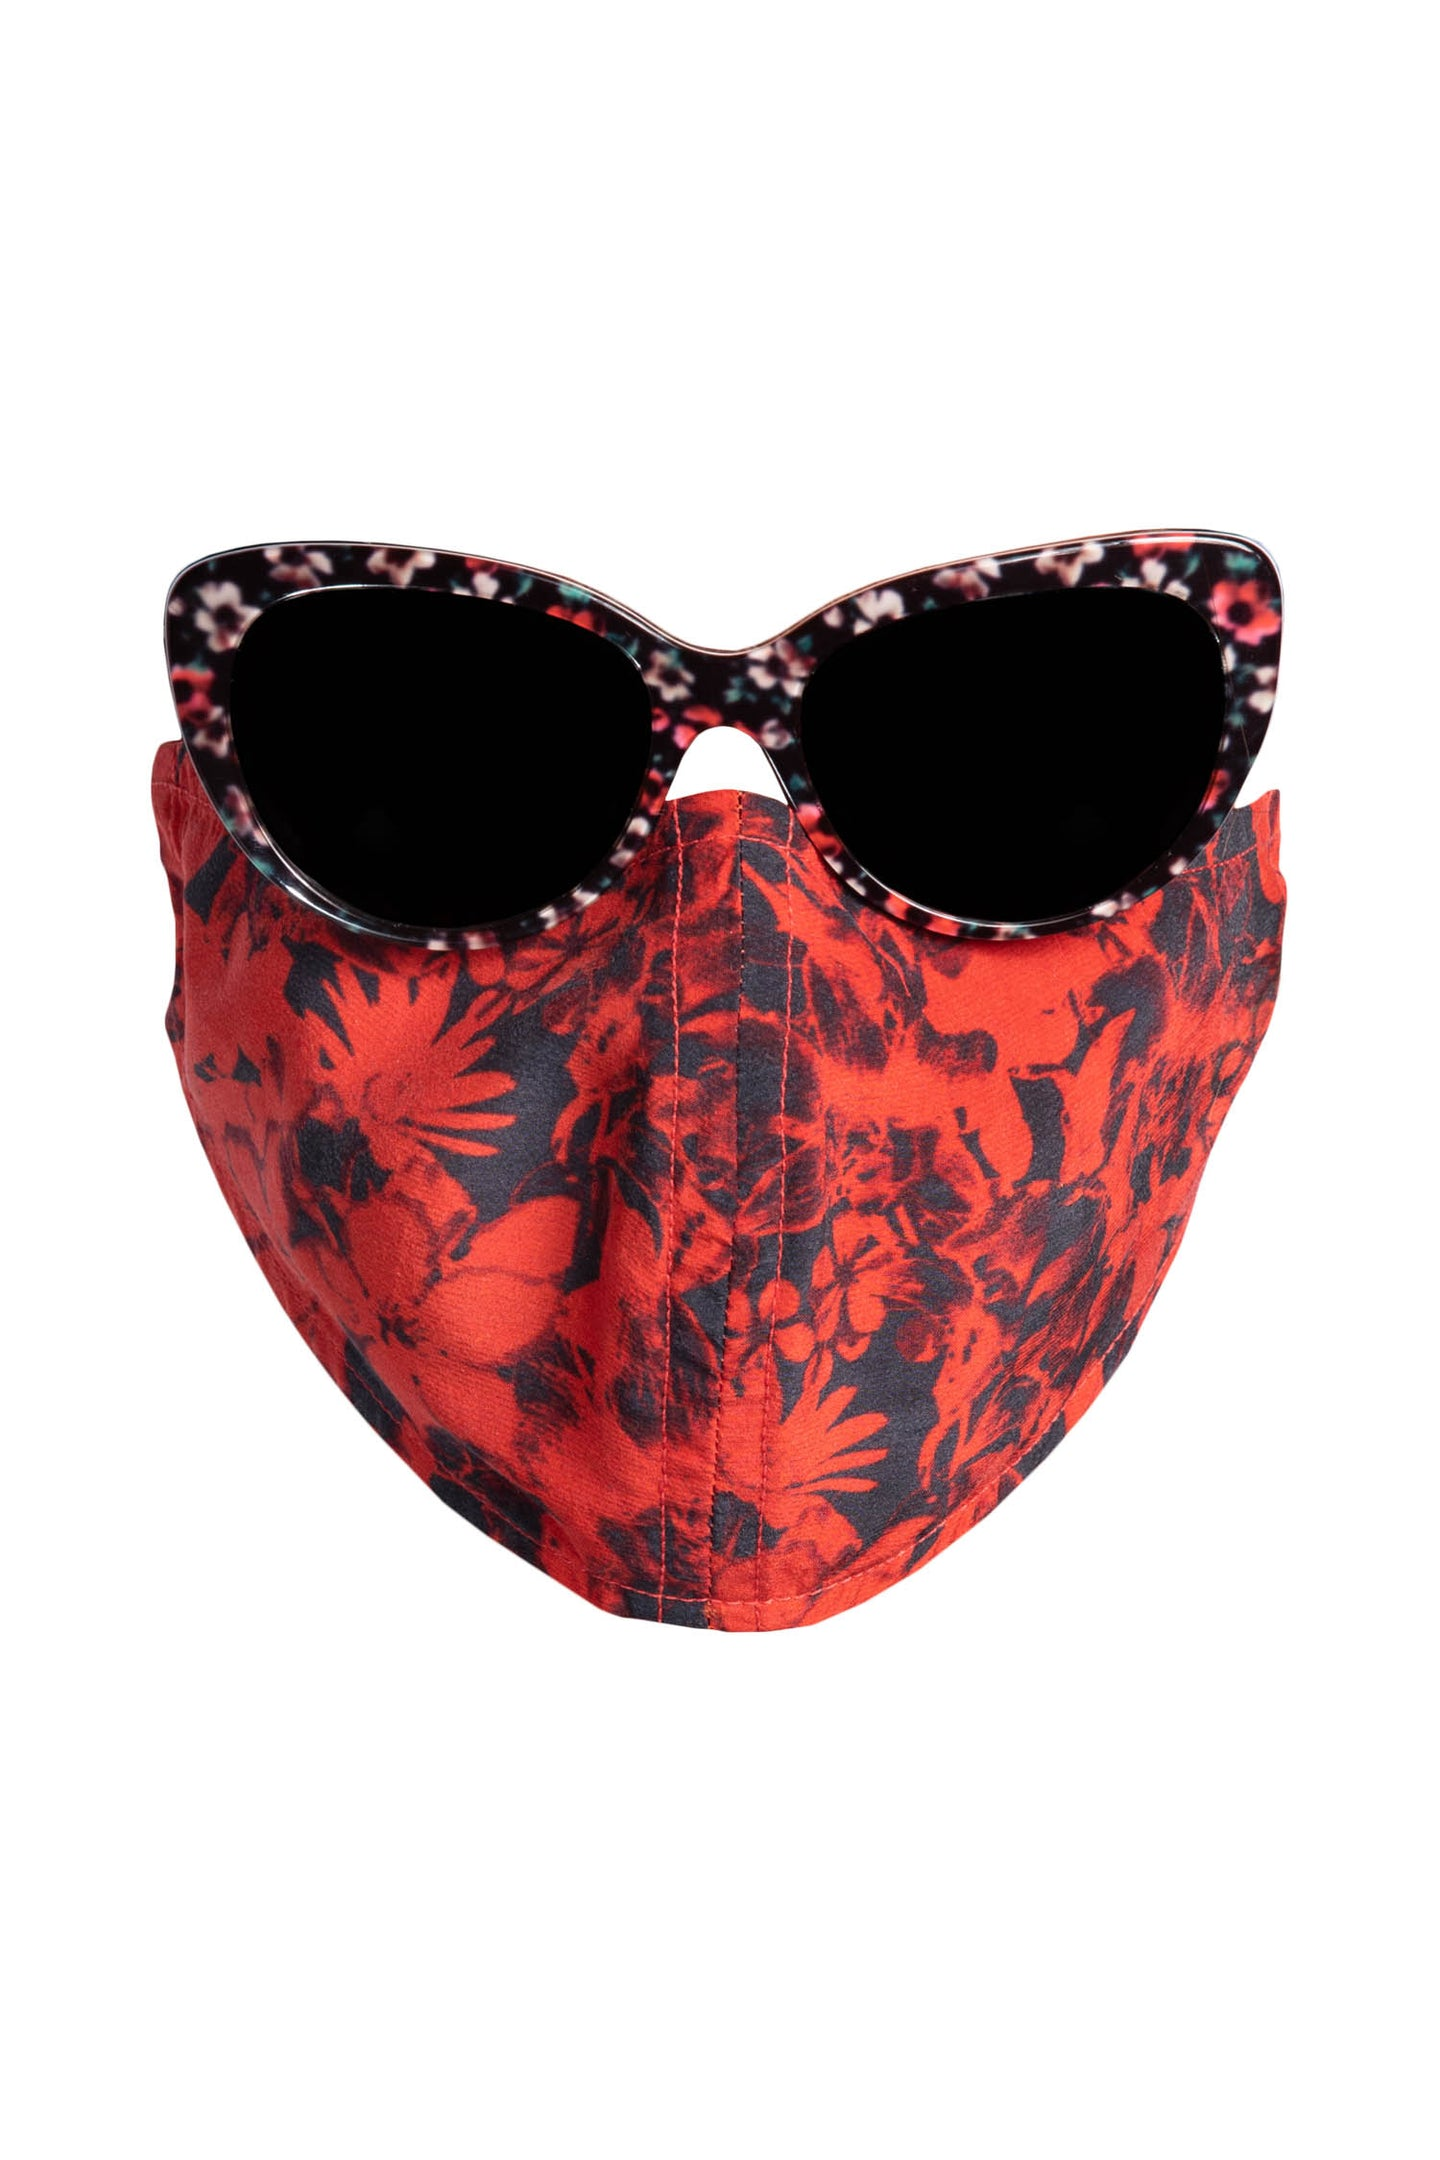 Silk Face Mask - Red Floral